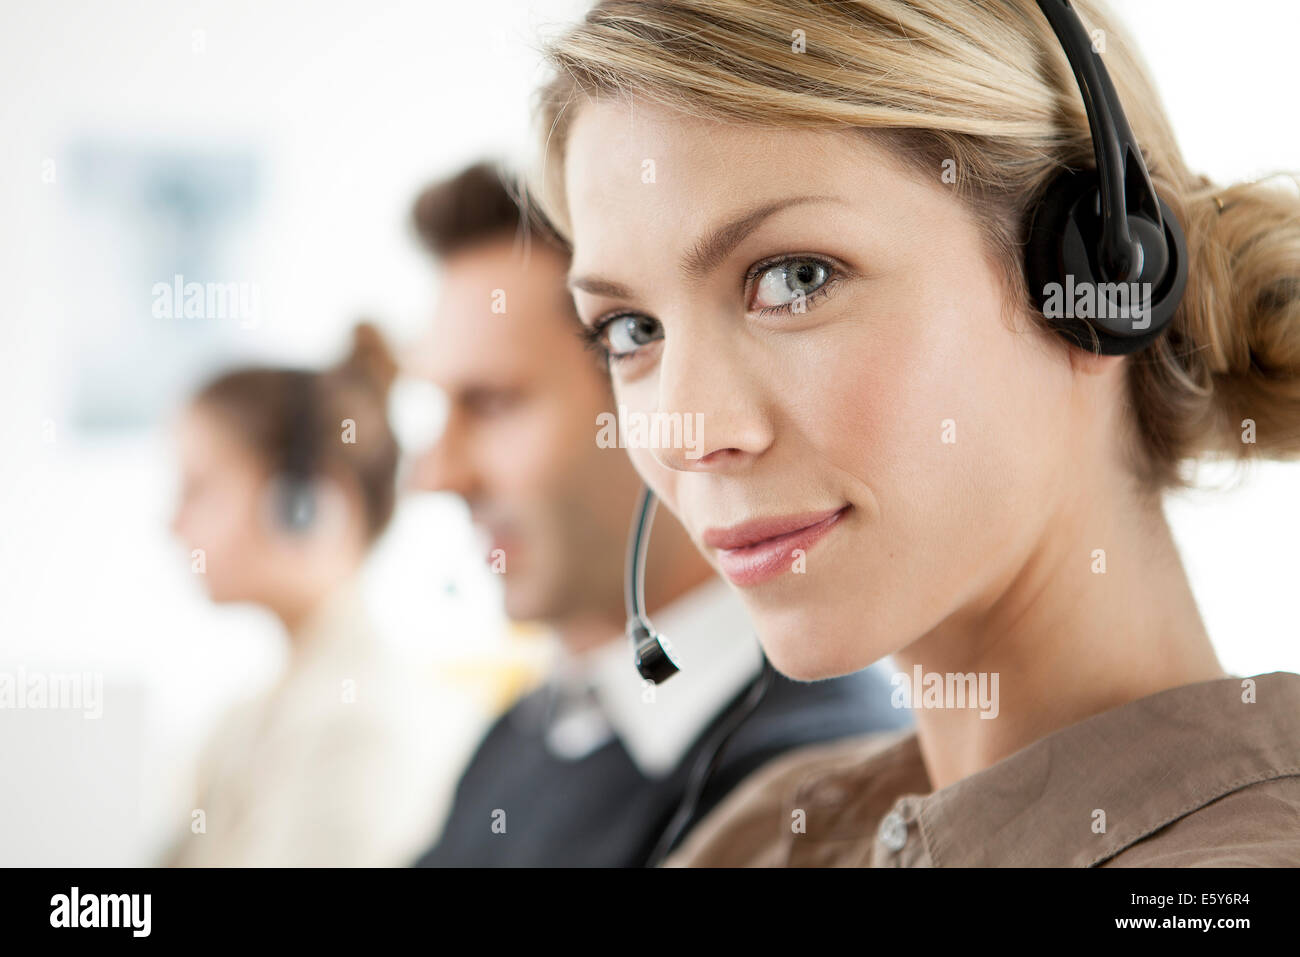 Telemarketer working in call center - Stock Image